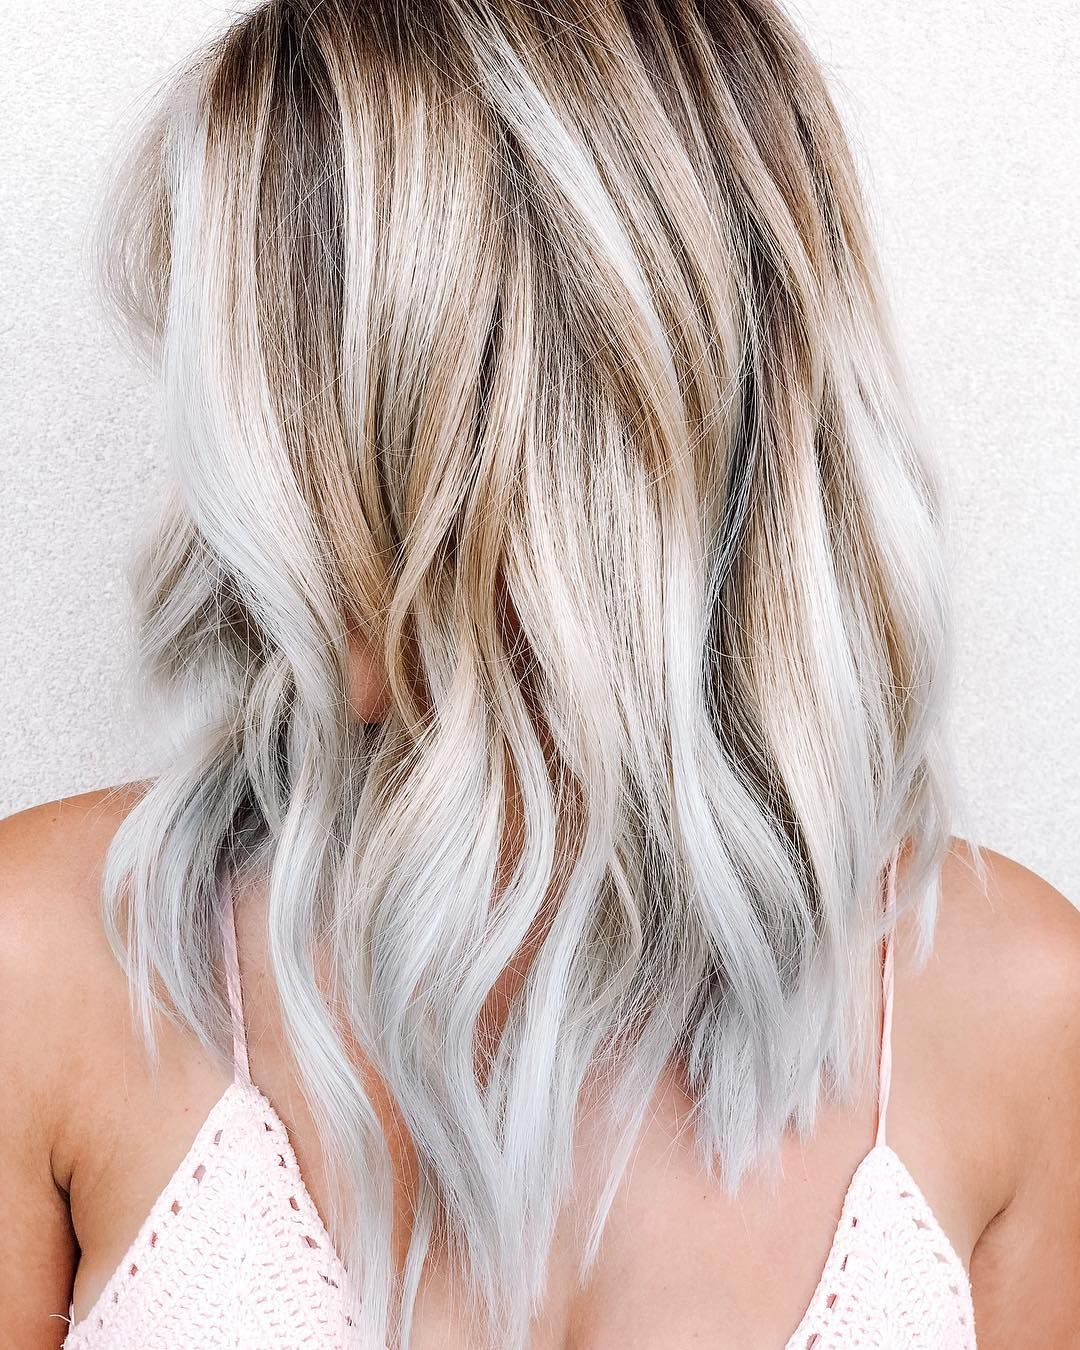 'Mushroom Blonde' Is The Only Hair Colour Trend You Need To Know About This Summer